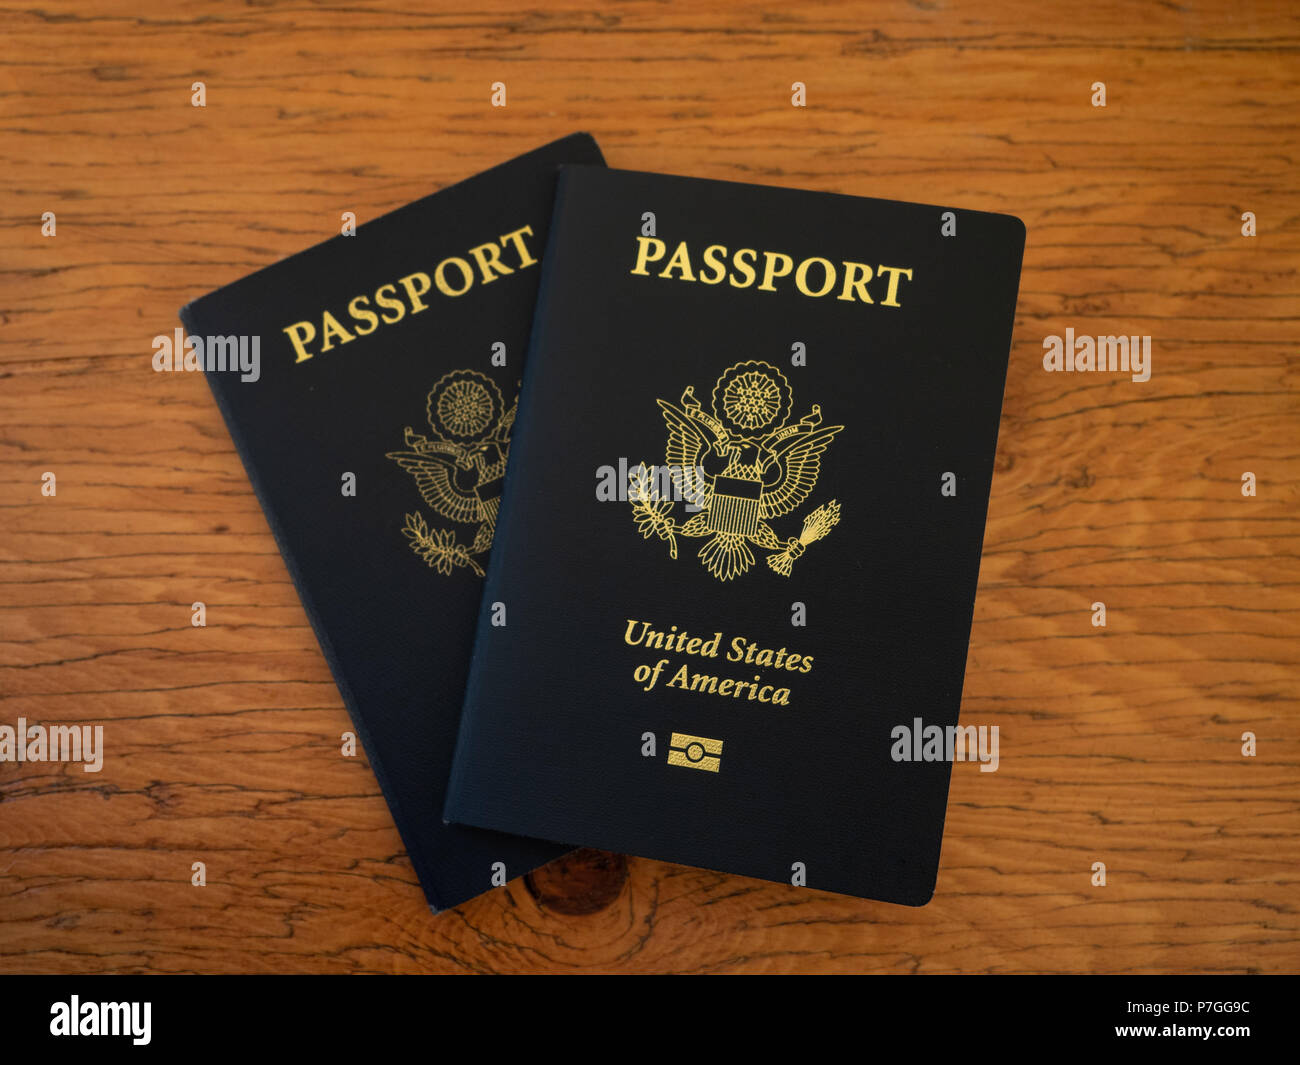 Two navy blue US Passports on a wooden table top and photographed from above. - Stock Image